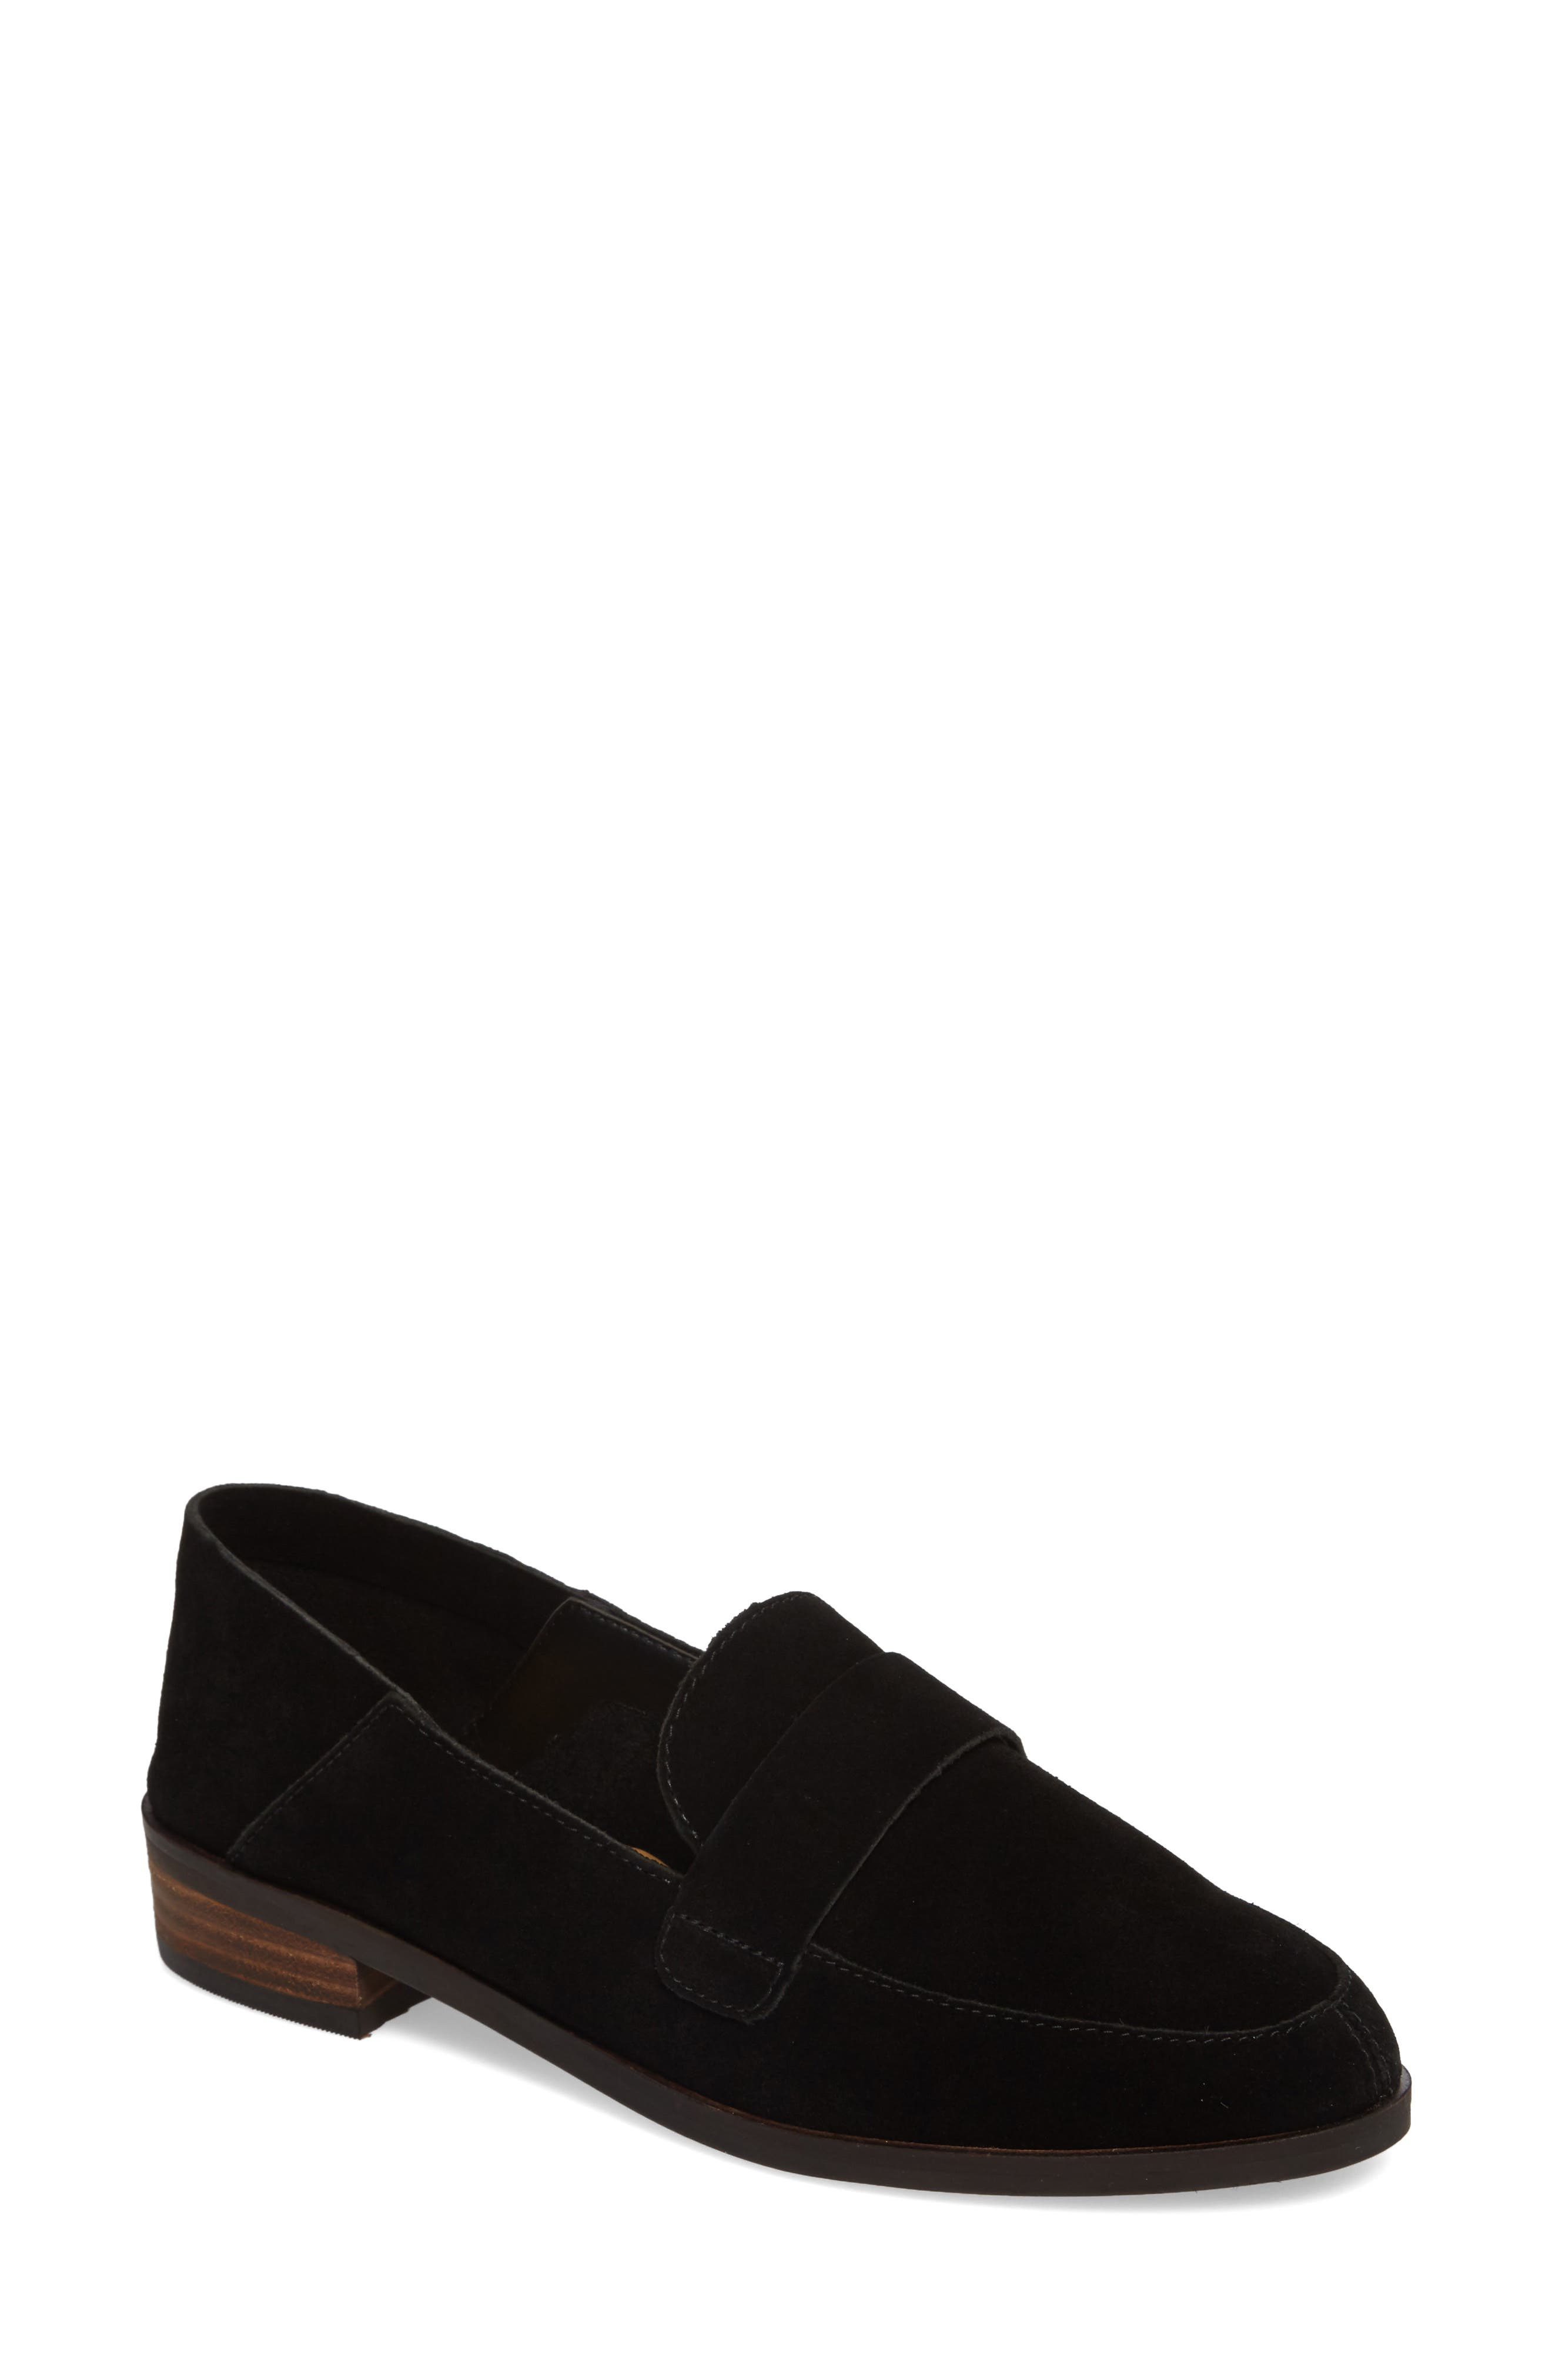 Chennie Loafer,                         Main,                         color, 001